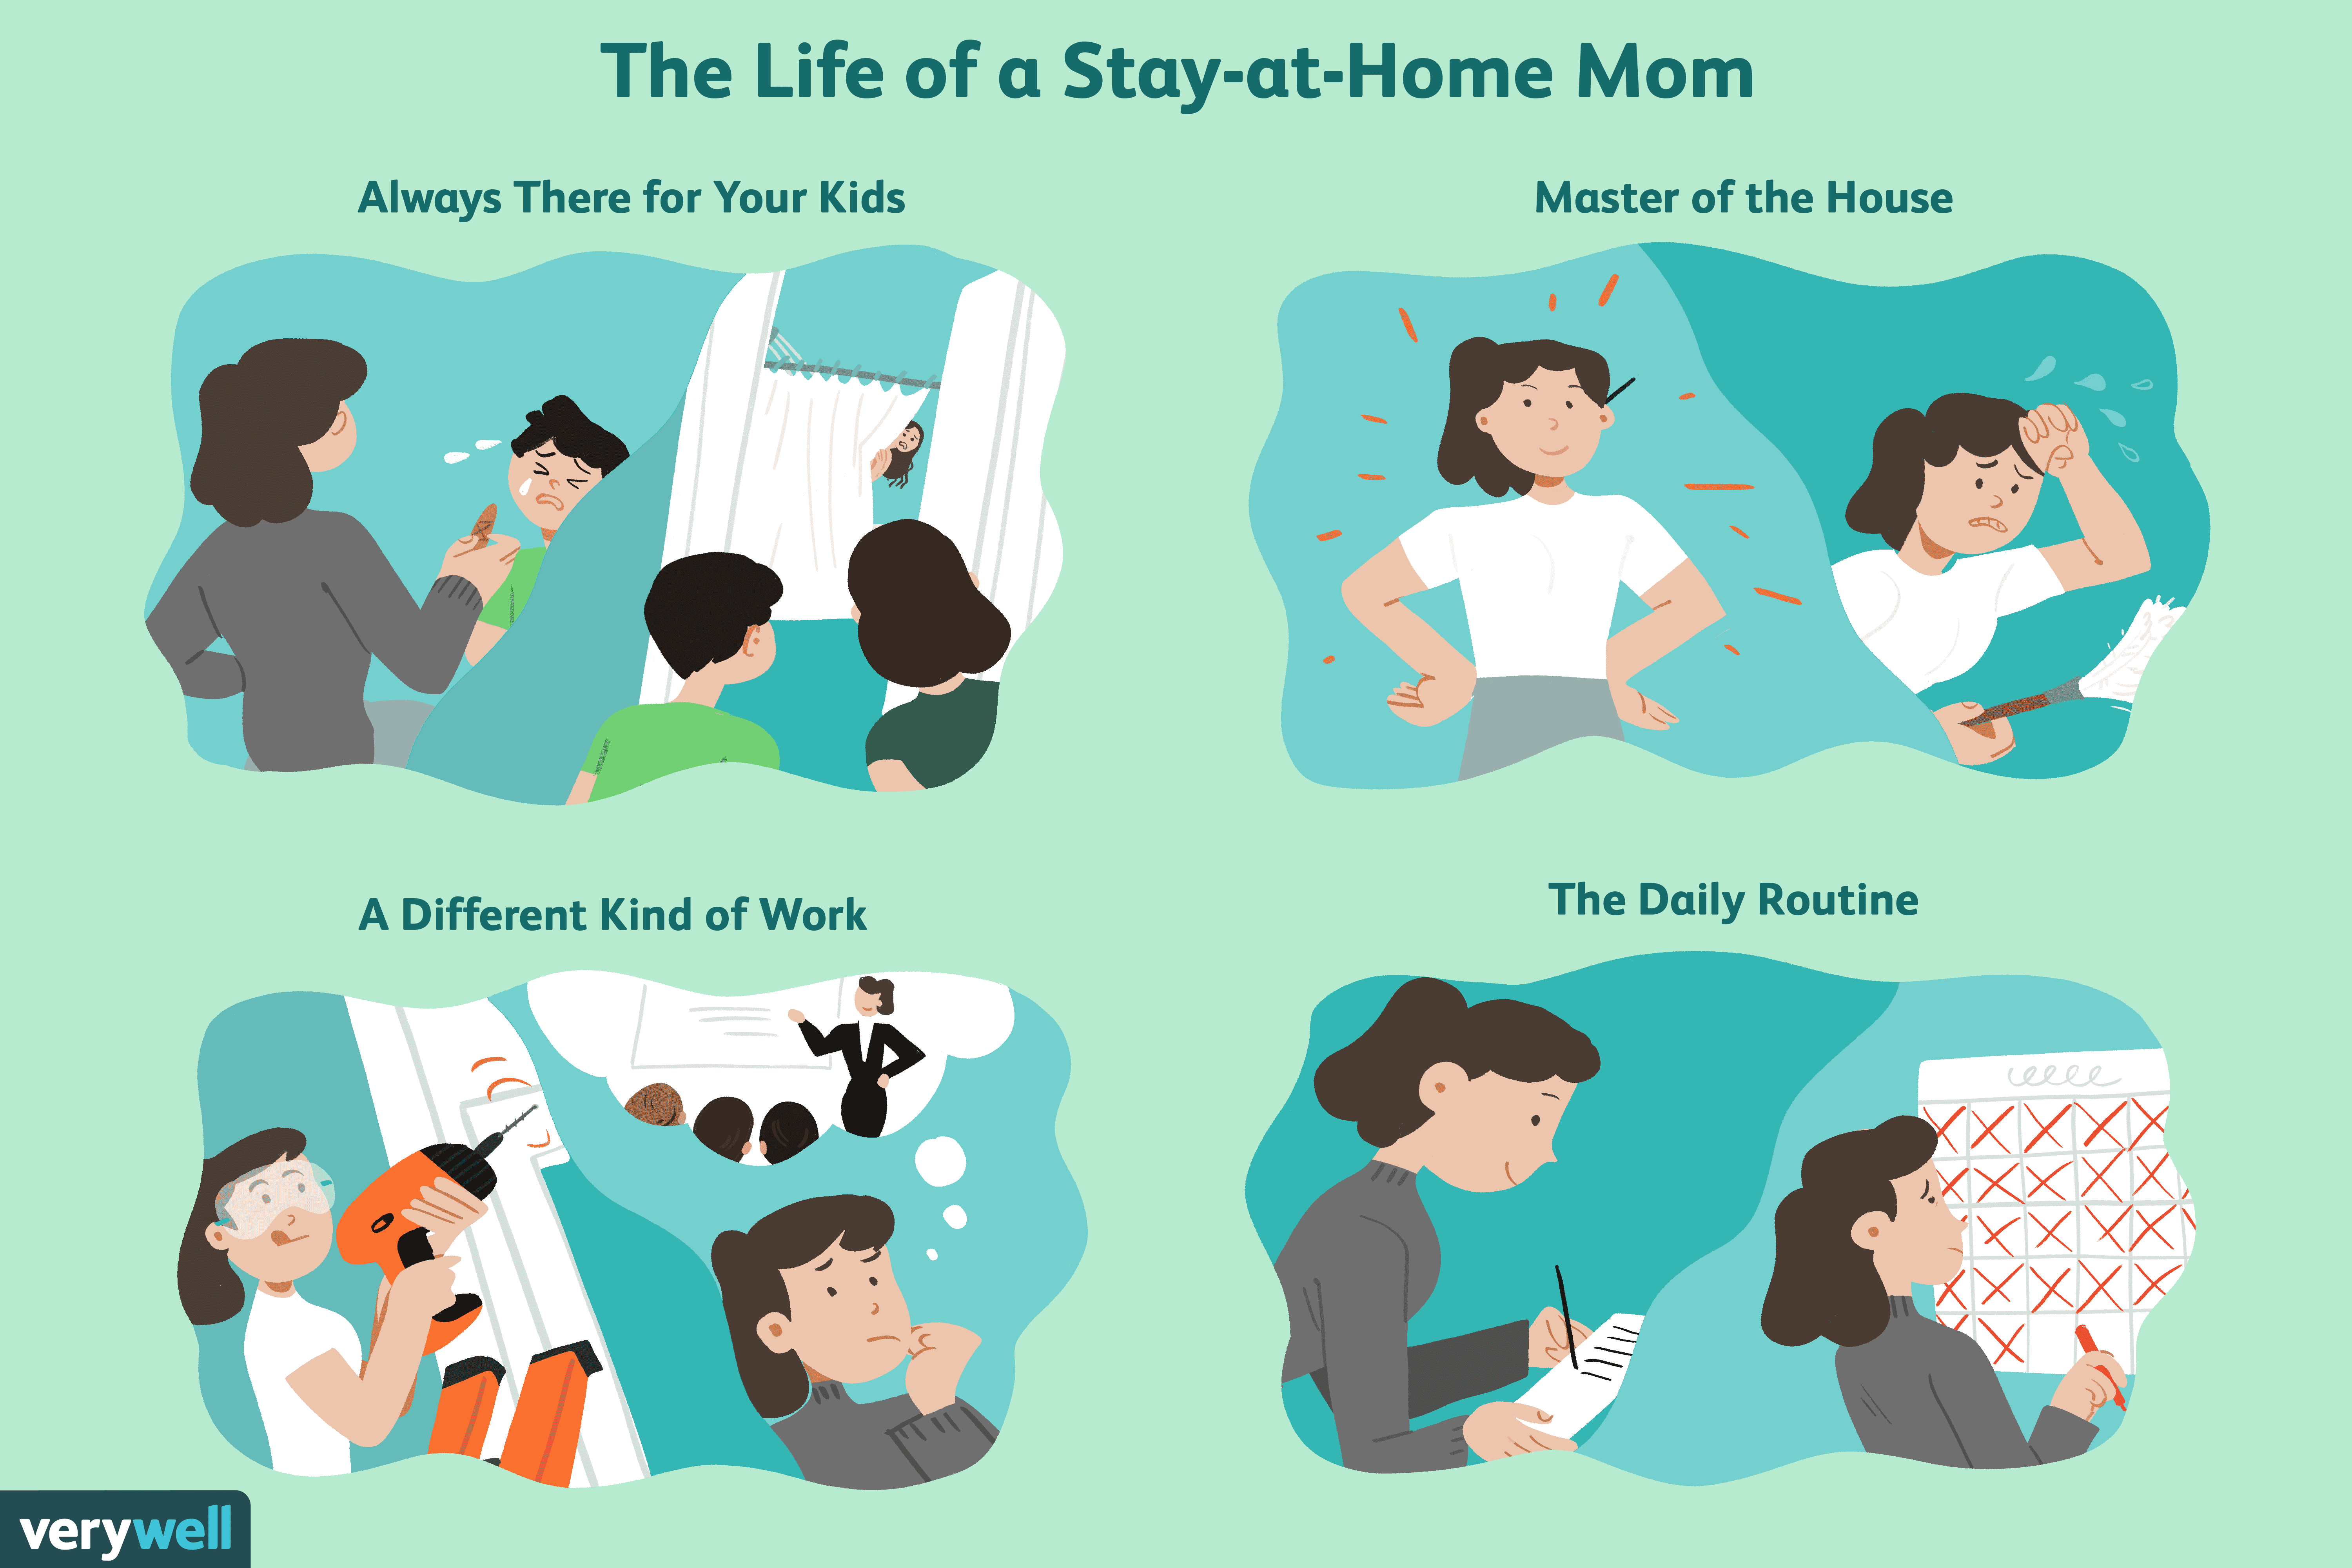 Giving up a chair for parent clipart stock 10 Pros and Cons of Being a Stay-at-Home Mom stock